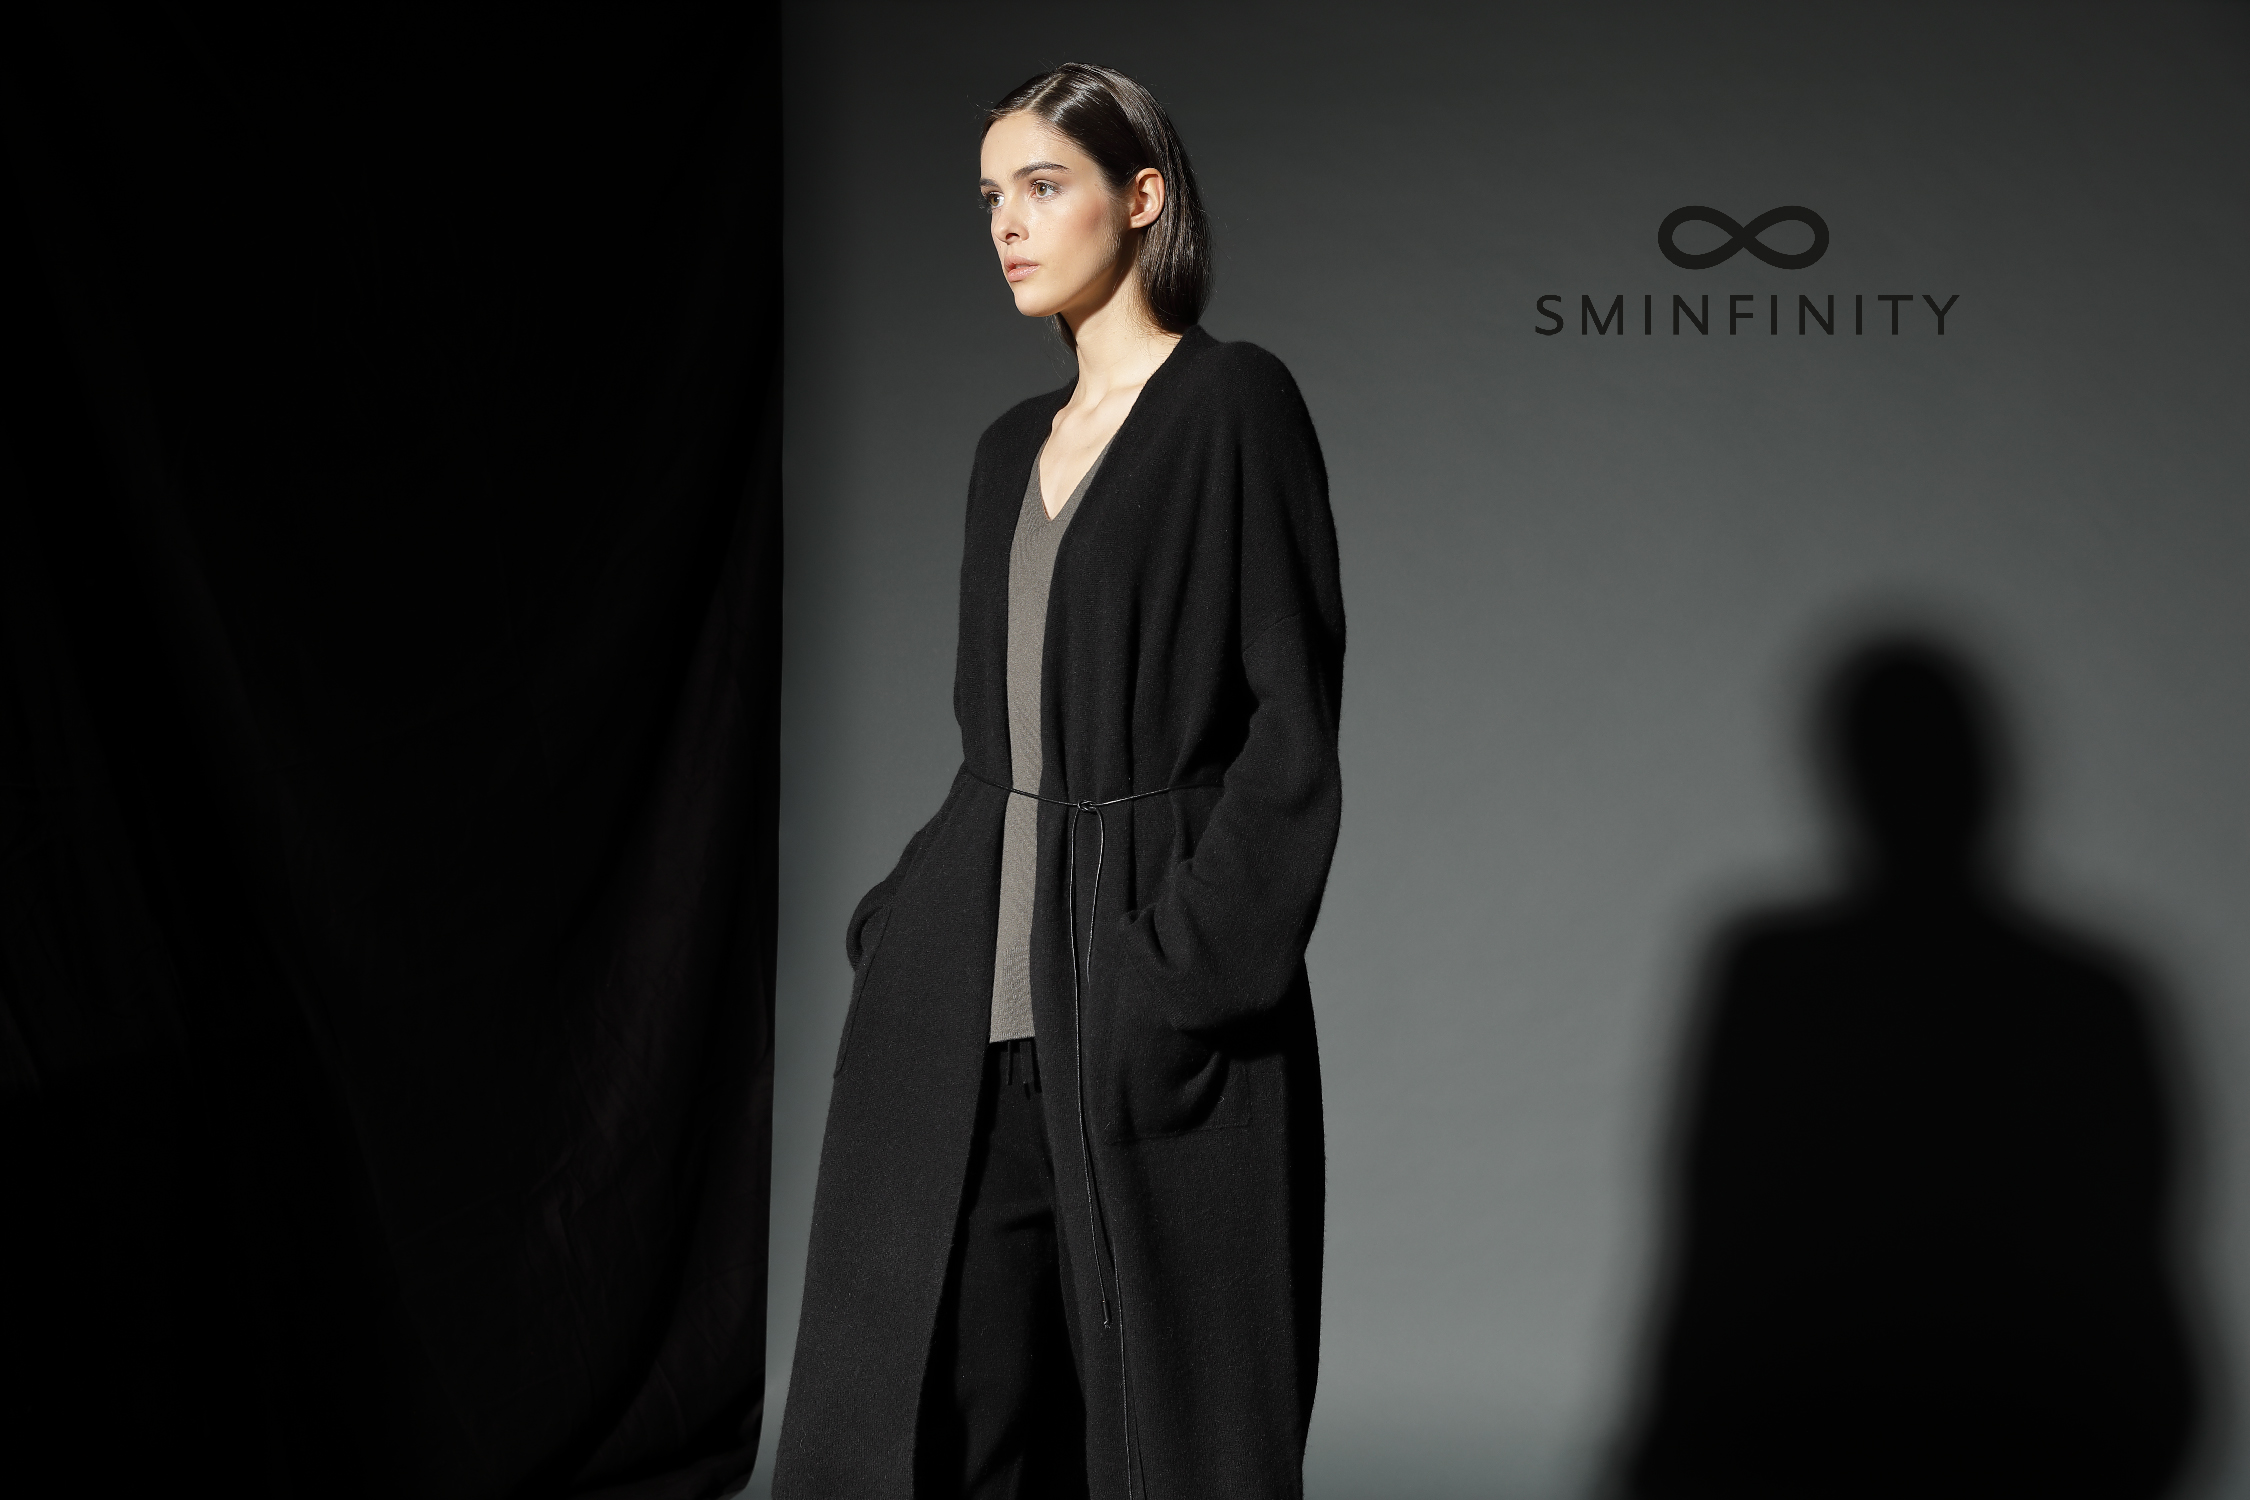 SMINFINITY Knitwear Hamburg Germany, Foto: Holger Stoehrmann, mail@stoehrmann.com, 0177-6302754